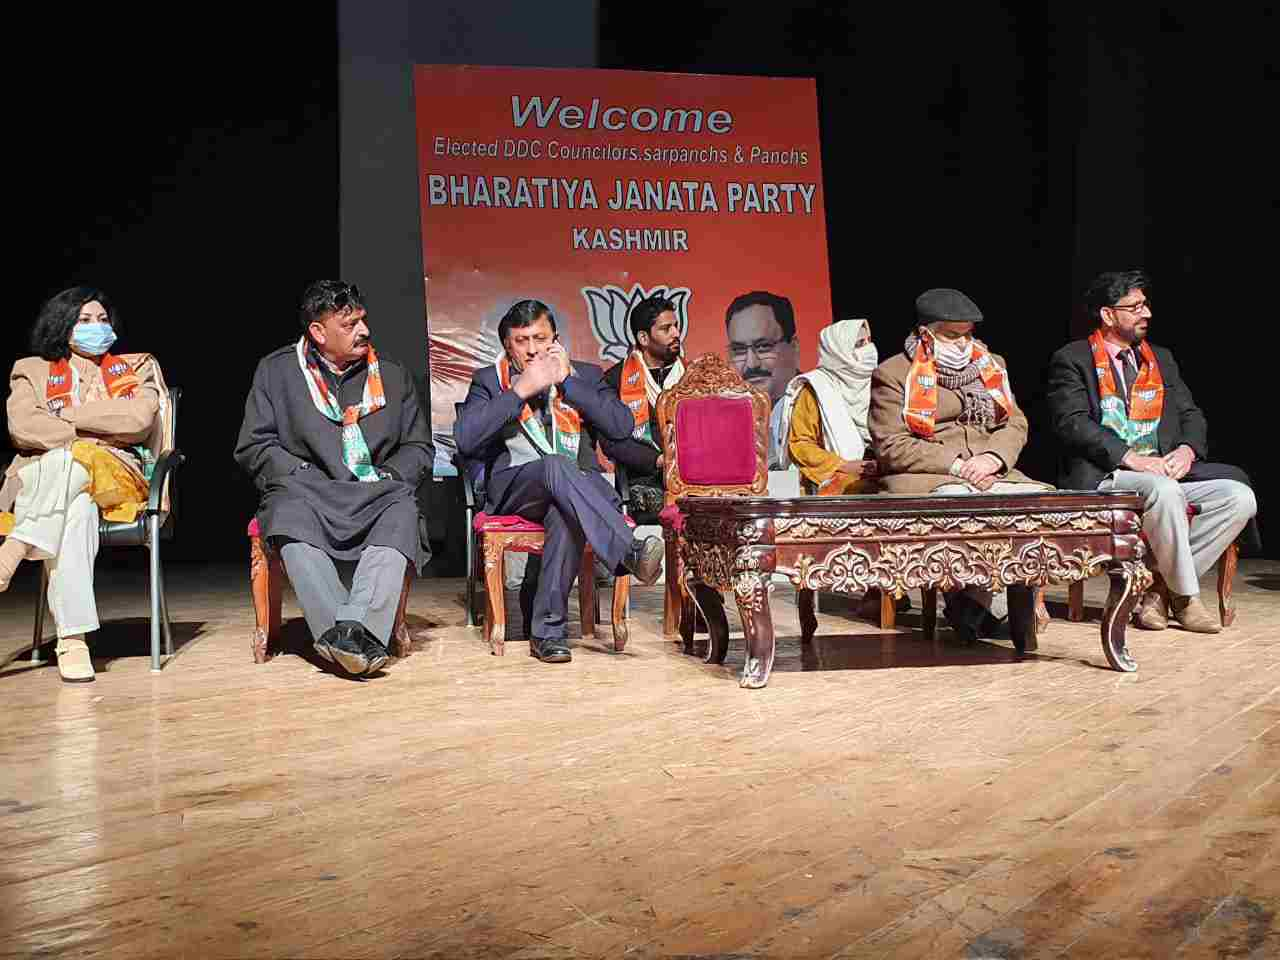 J&K: BJP facilitated newly elected representatives, vowed to work for development in region, Was victory of trust and commitment: Chugh 4